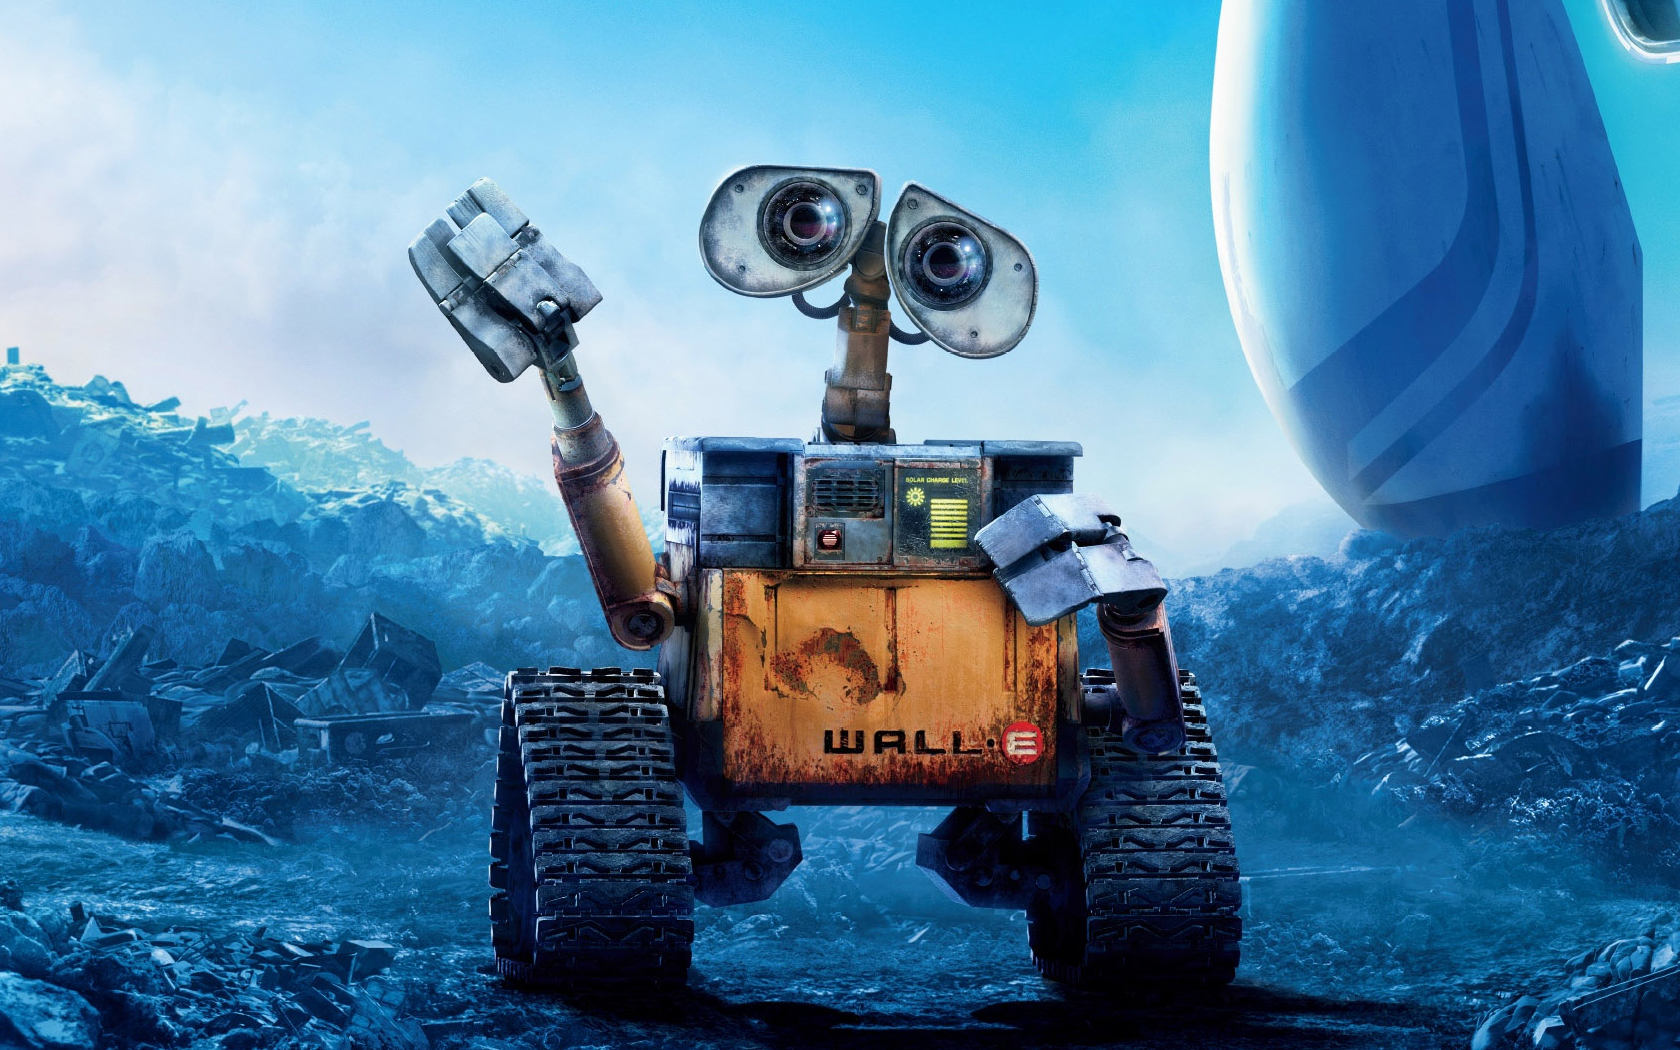 1680x1050 Wall E Robot Picture Desktop PC And Mac Wallpaper